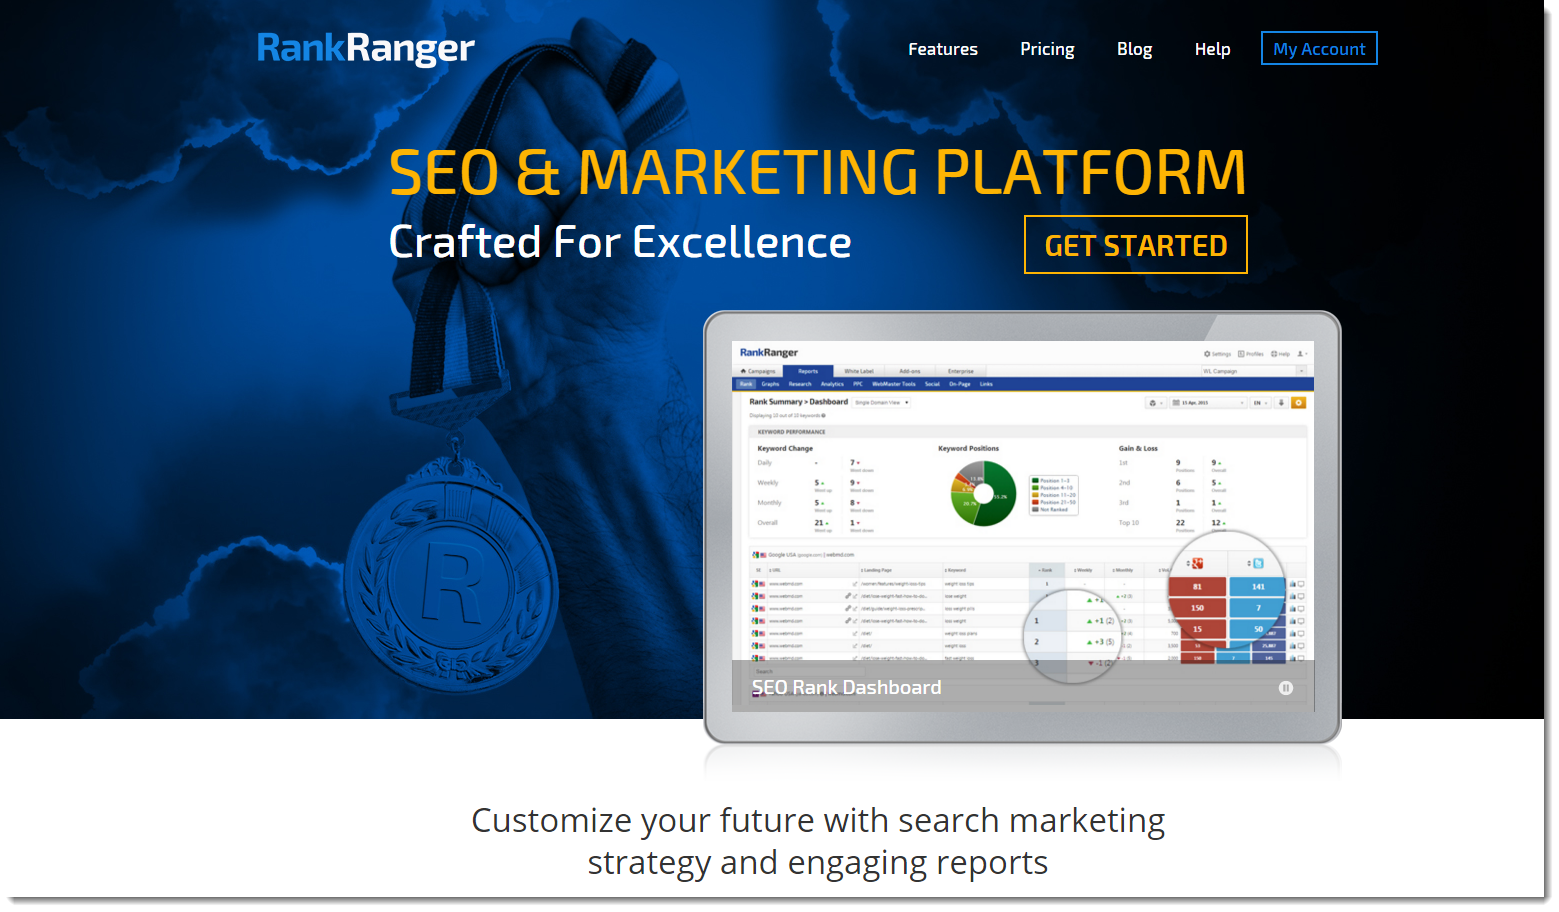 Rank Ranger SEO & Marketing Platform